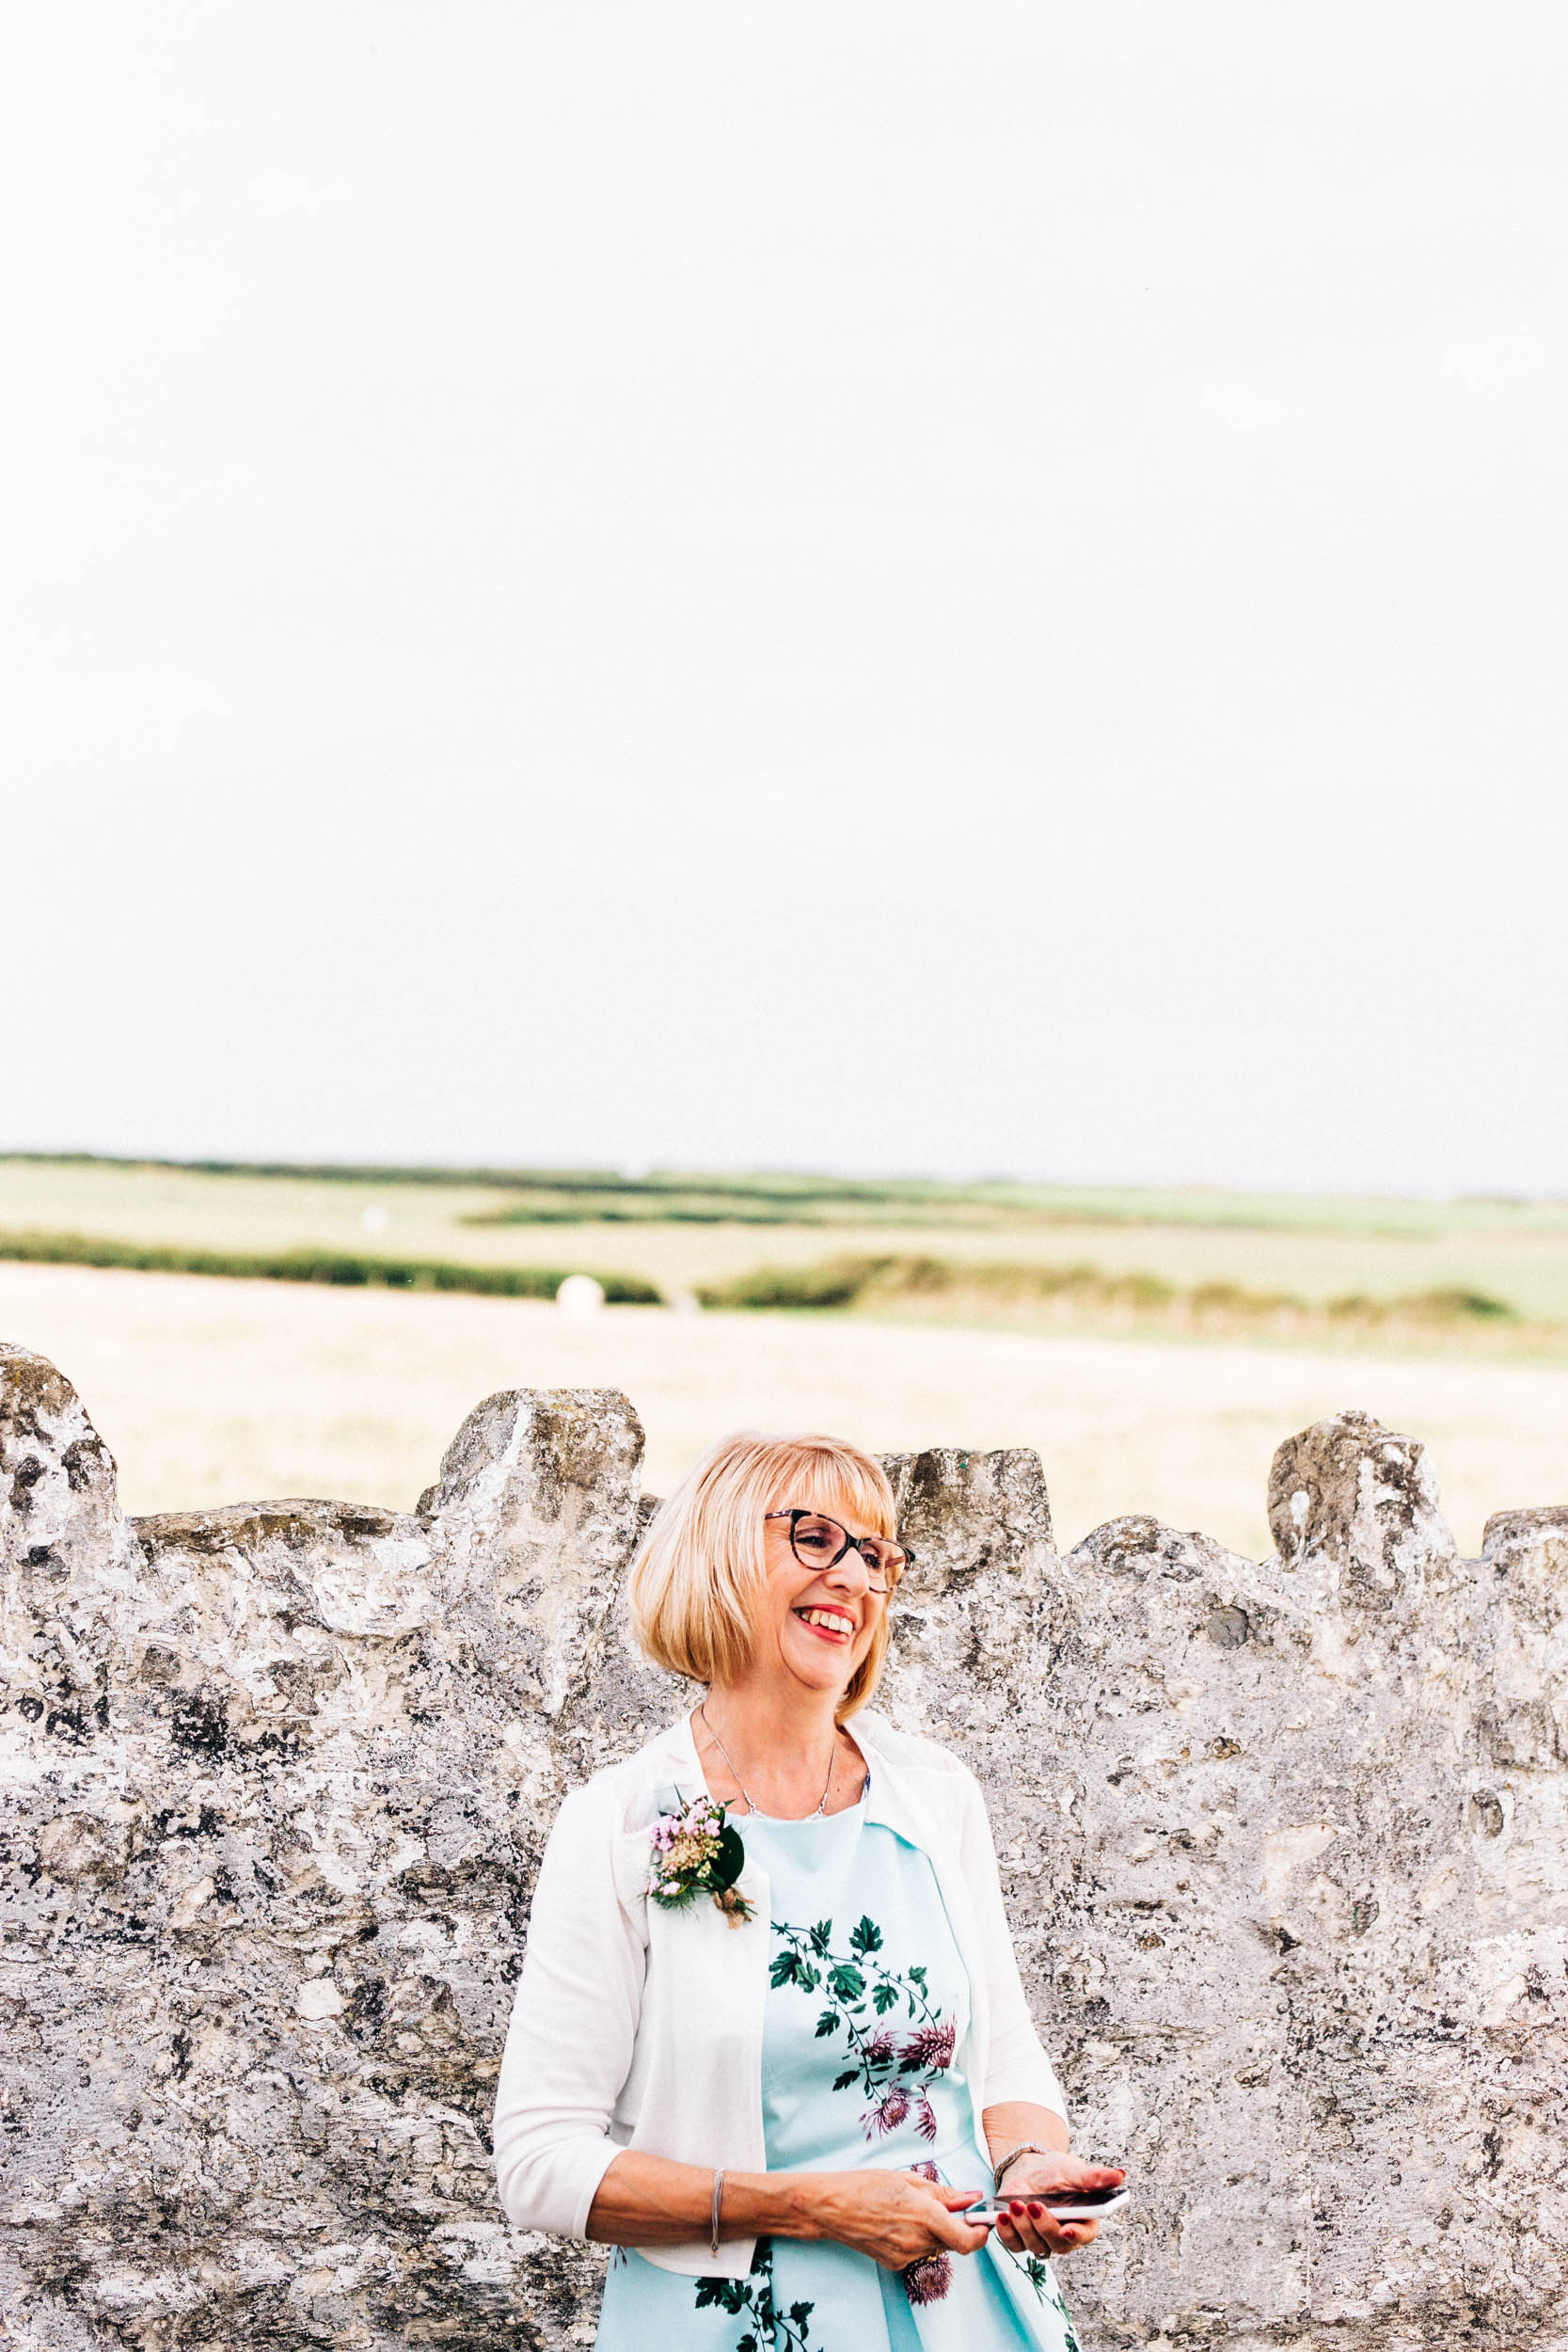 Alex_Sedgmond_Photography-MonkNashLighthouse-WeddingPhotography-Penny&Mike-183.jpg